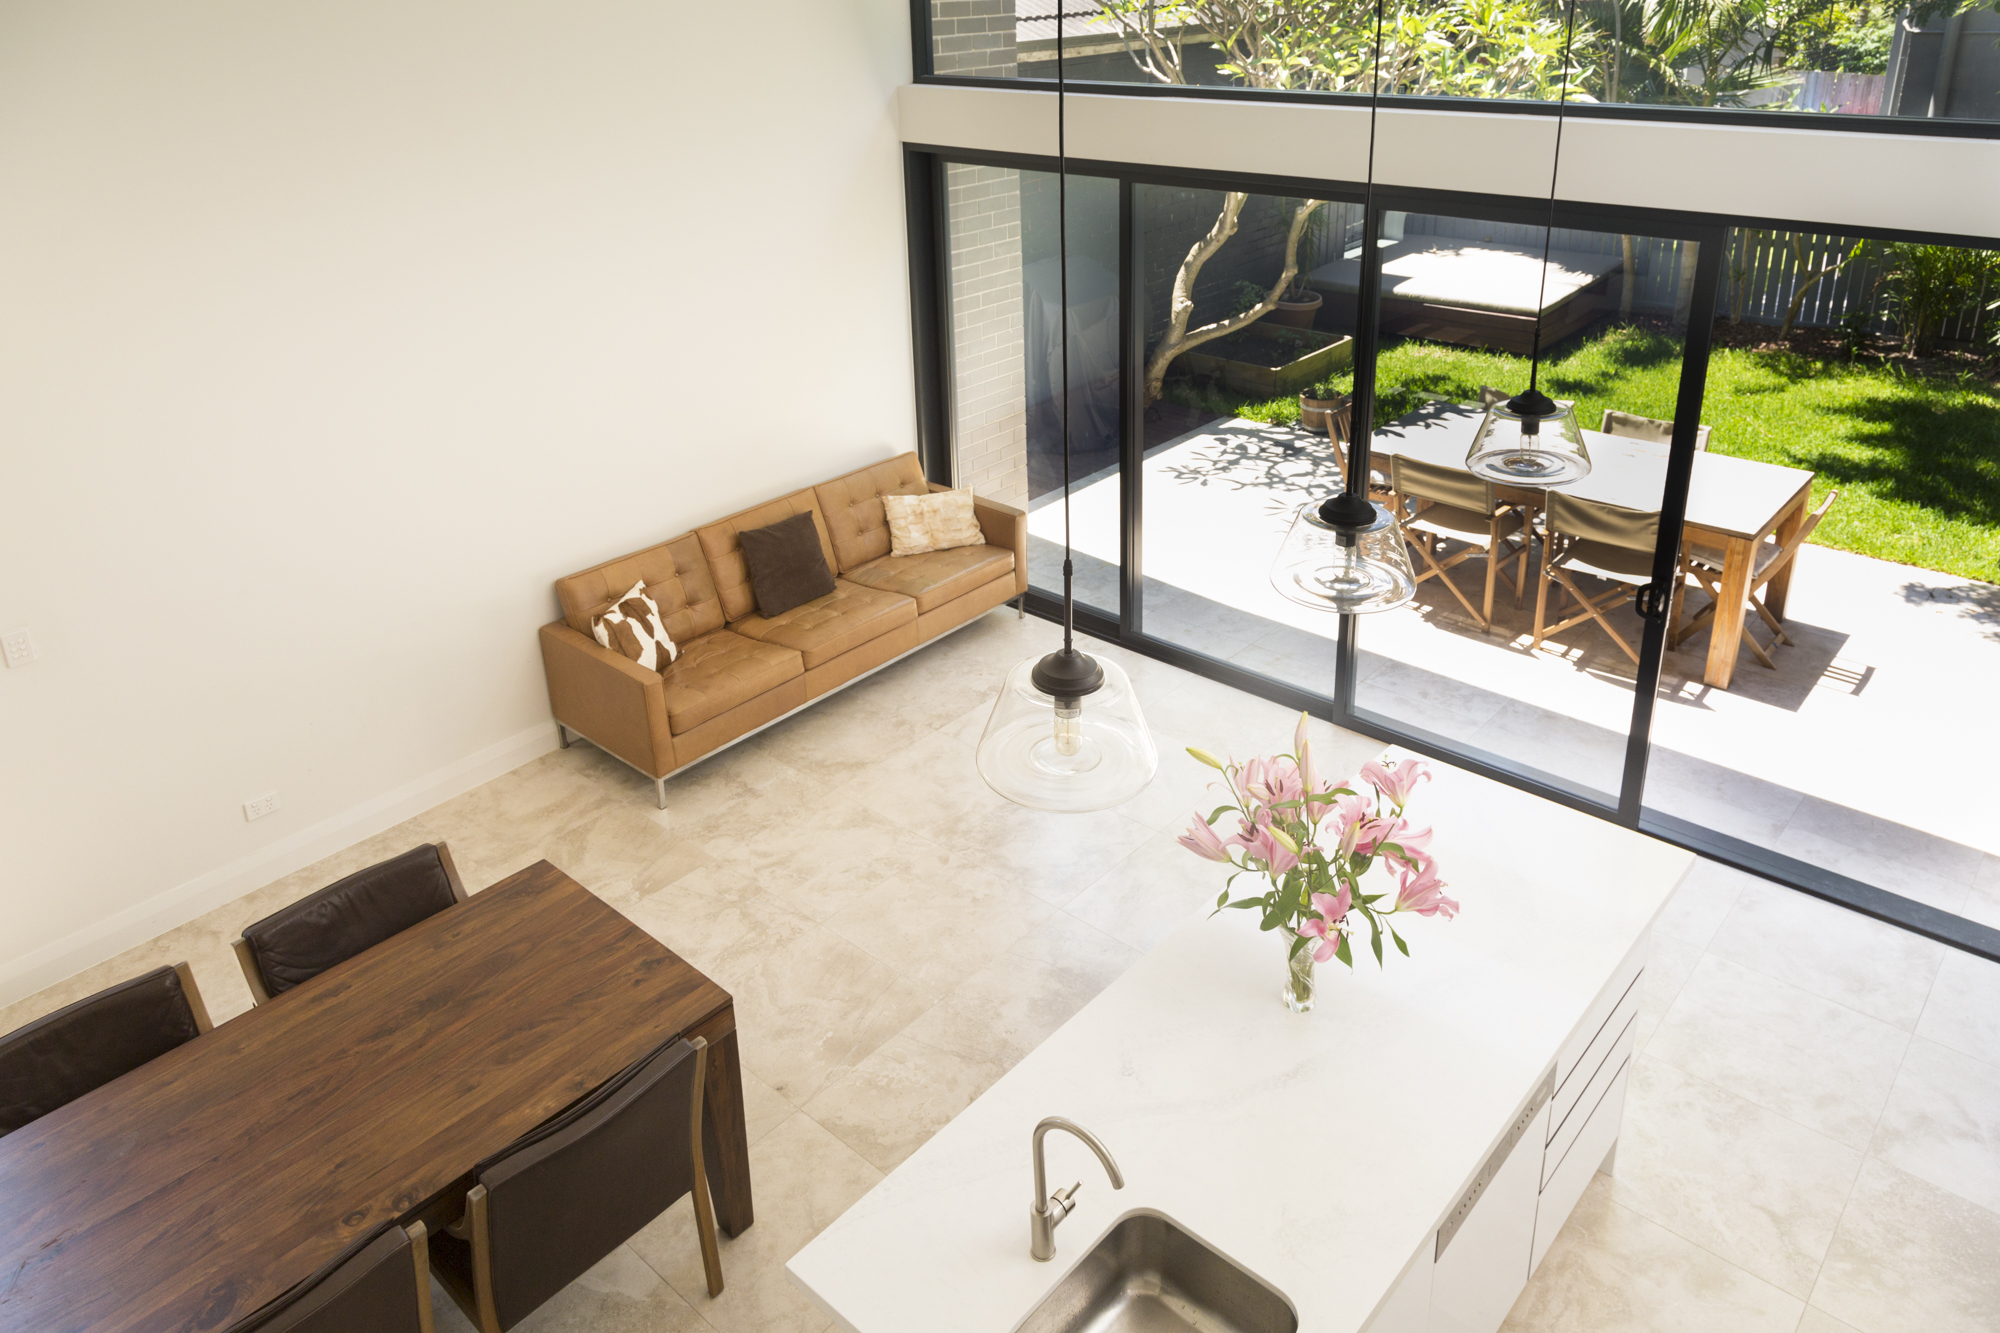 Bondi 3 bed indoor outdoor